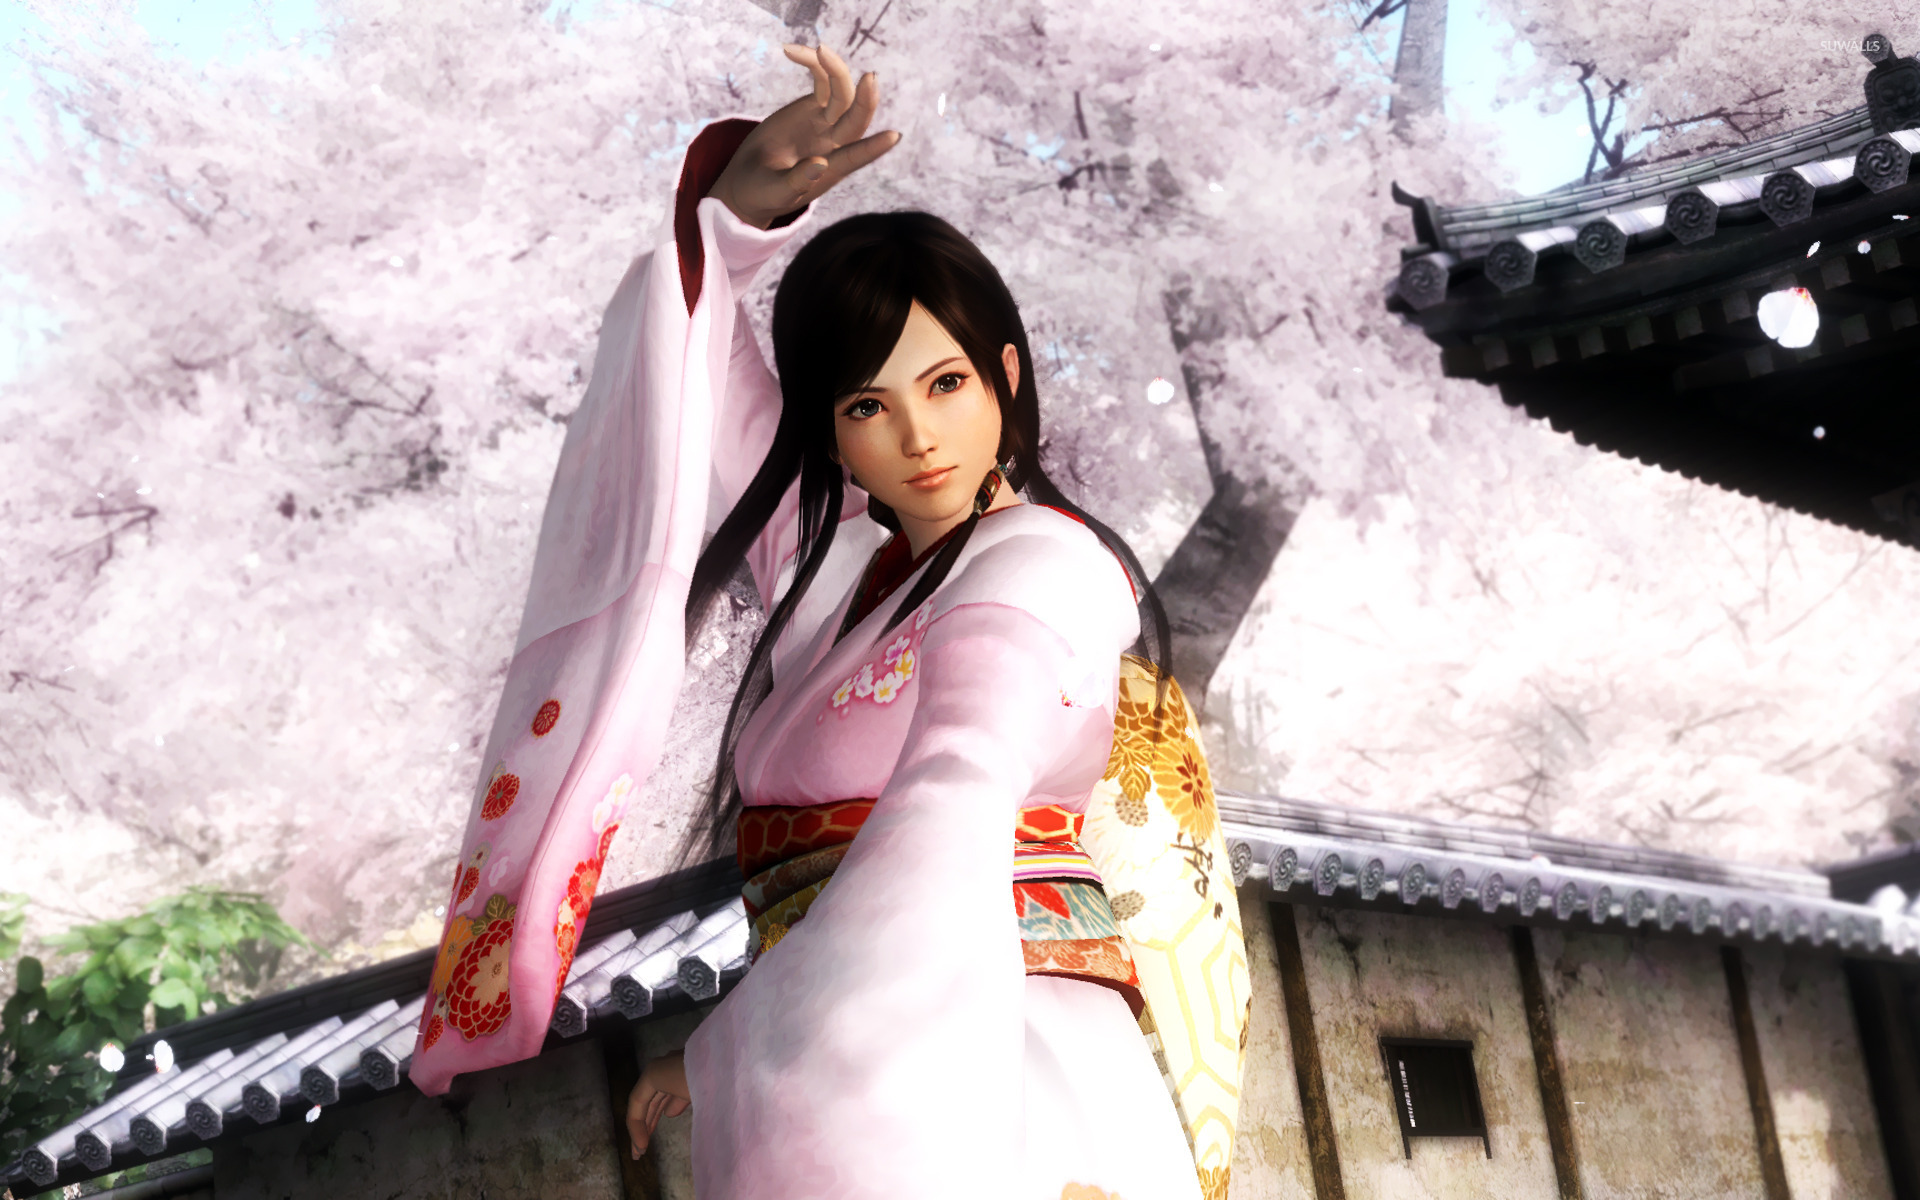 Kokoro   Dead or Alive 5 wallpaper   Game wallpapers   14762 1920x1200